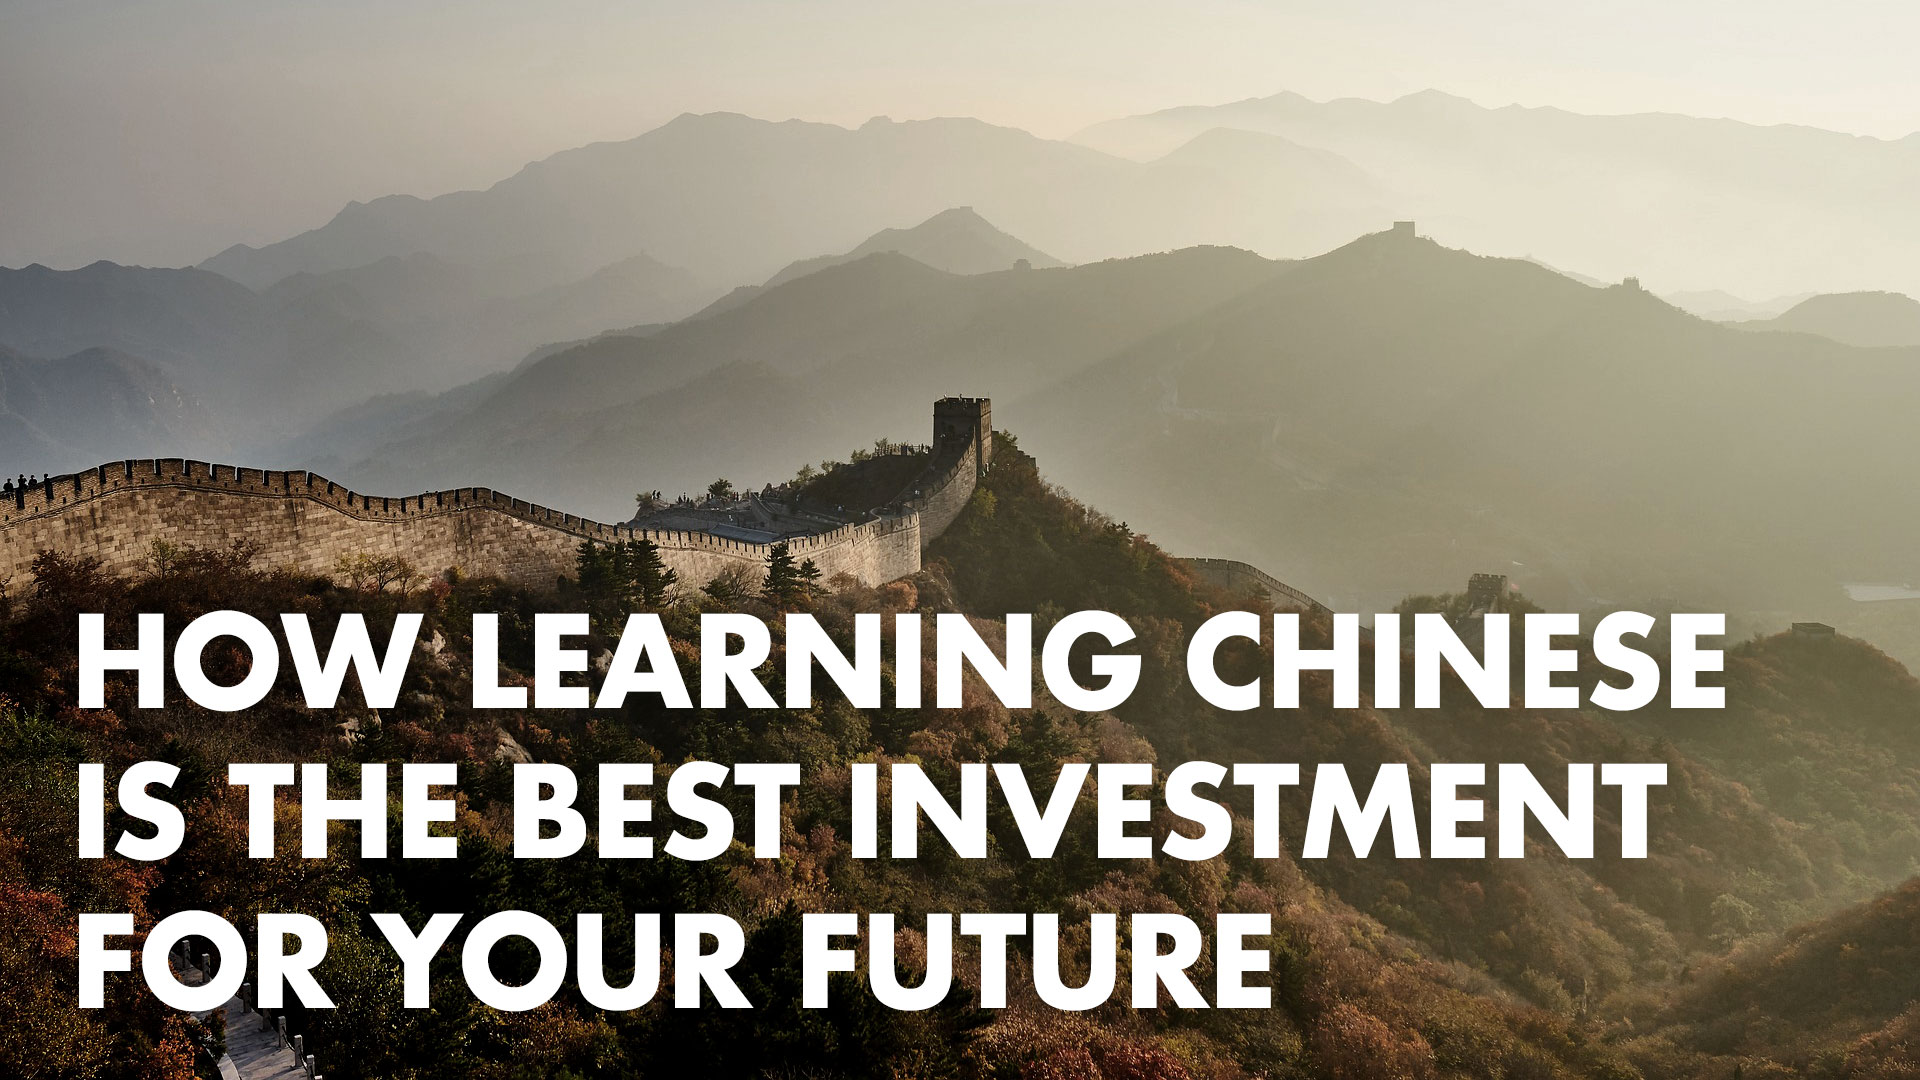 How Learning Chinese is the Best Investment for Your Future